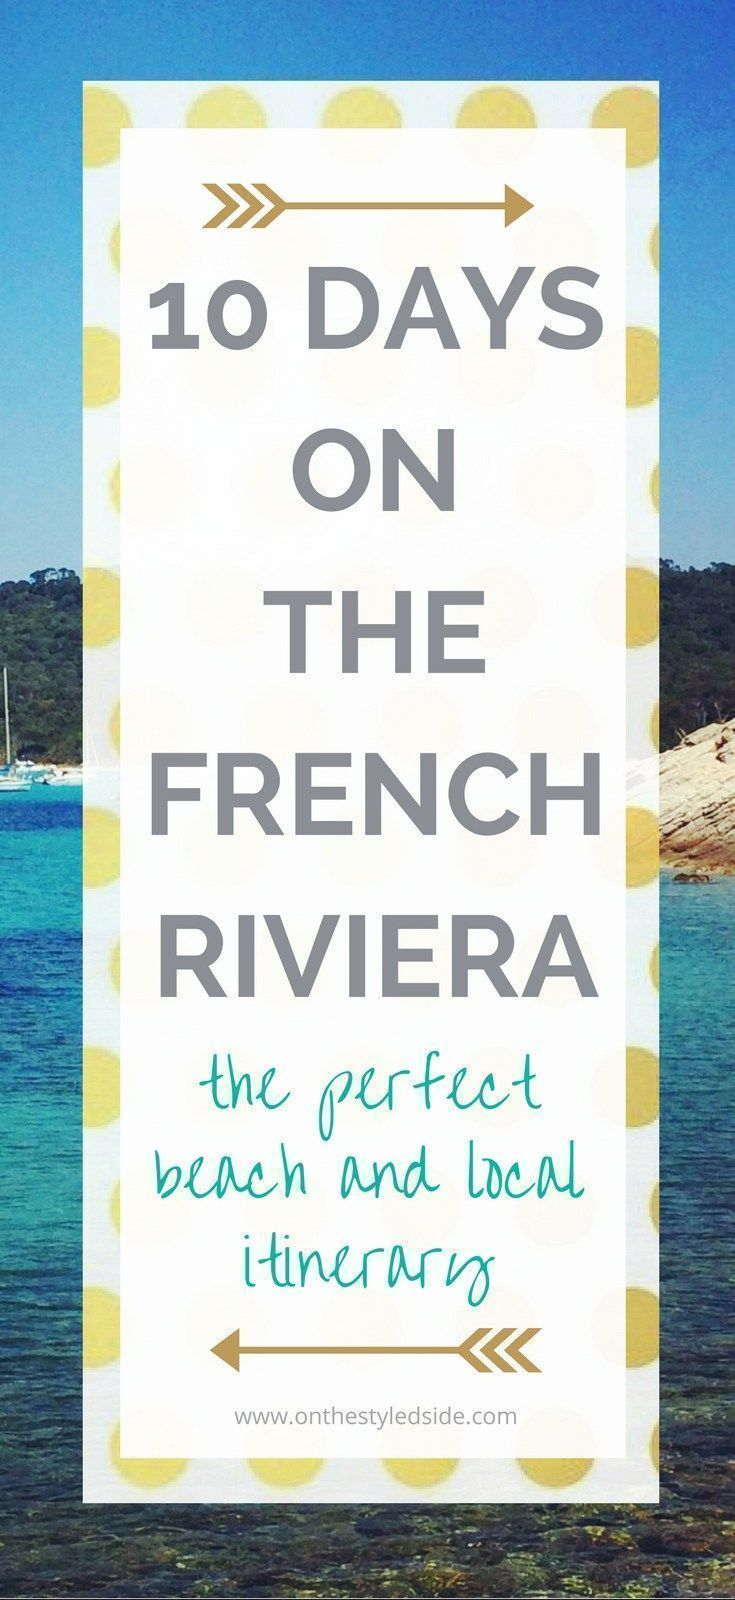 Perfect French Riviera 10-Day Vacation Itinerary | See where to stay, play, eat + drink for the best South of France Vacation! | France Travel | France Vacation | South of France Vacation | French Riviera Vacation  Find Super Cheap International Flights to Cannes, France ✈✈✈ https://thedecisionmoment.com/cheap-flights-to-europe-france-cannes/ #cheapflights #francetravel #cheapestflights